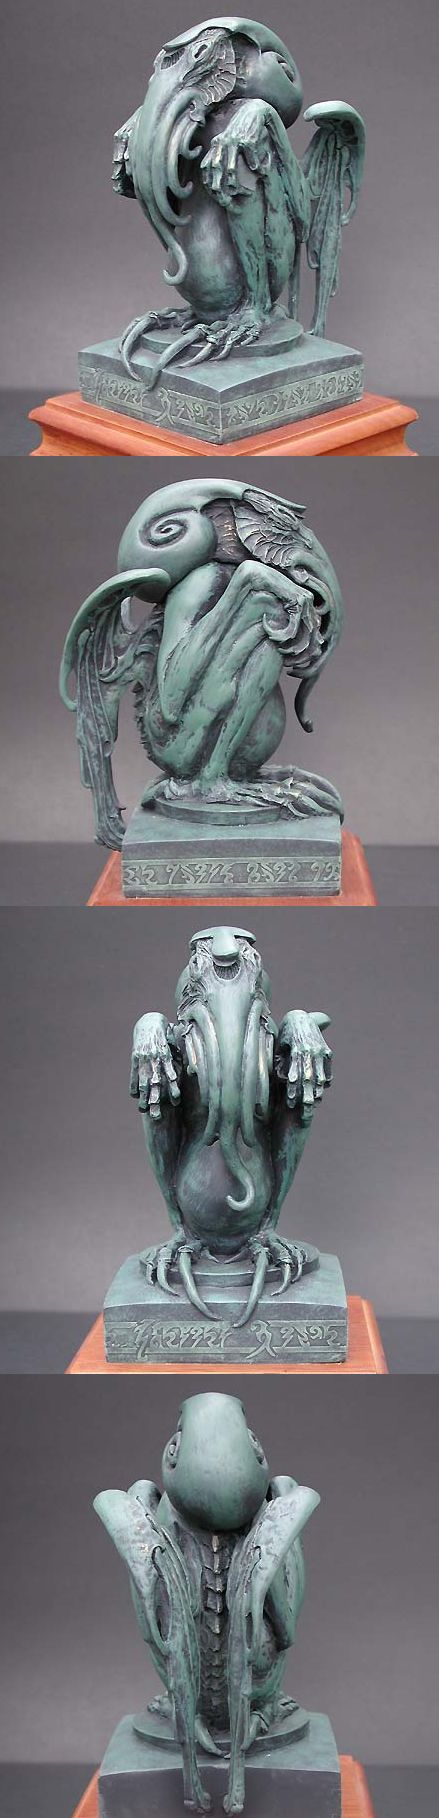 Fantasy | Whimsical | Strange | Mythical | Creative | Creatures | Dolls | Sculptures | Cthulhu sculpt